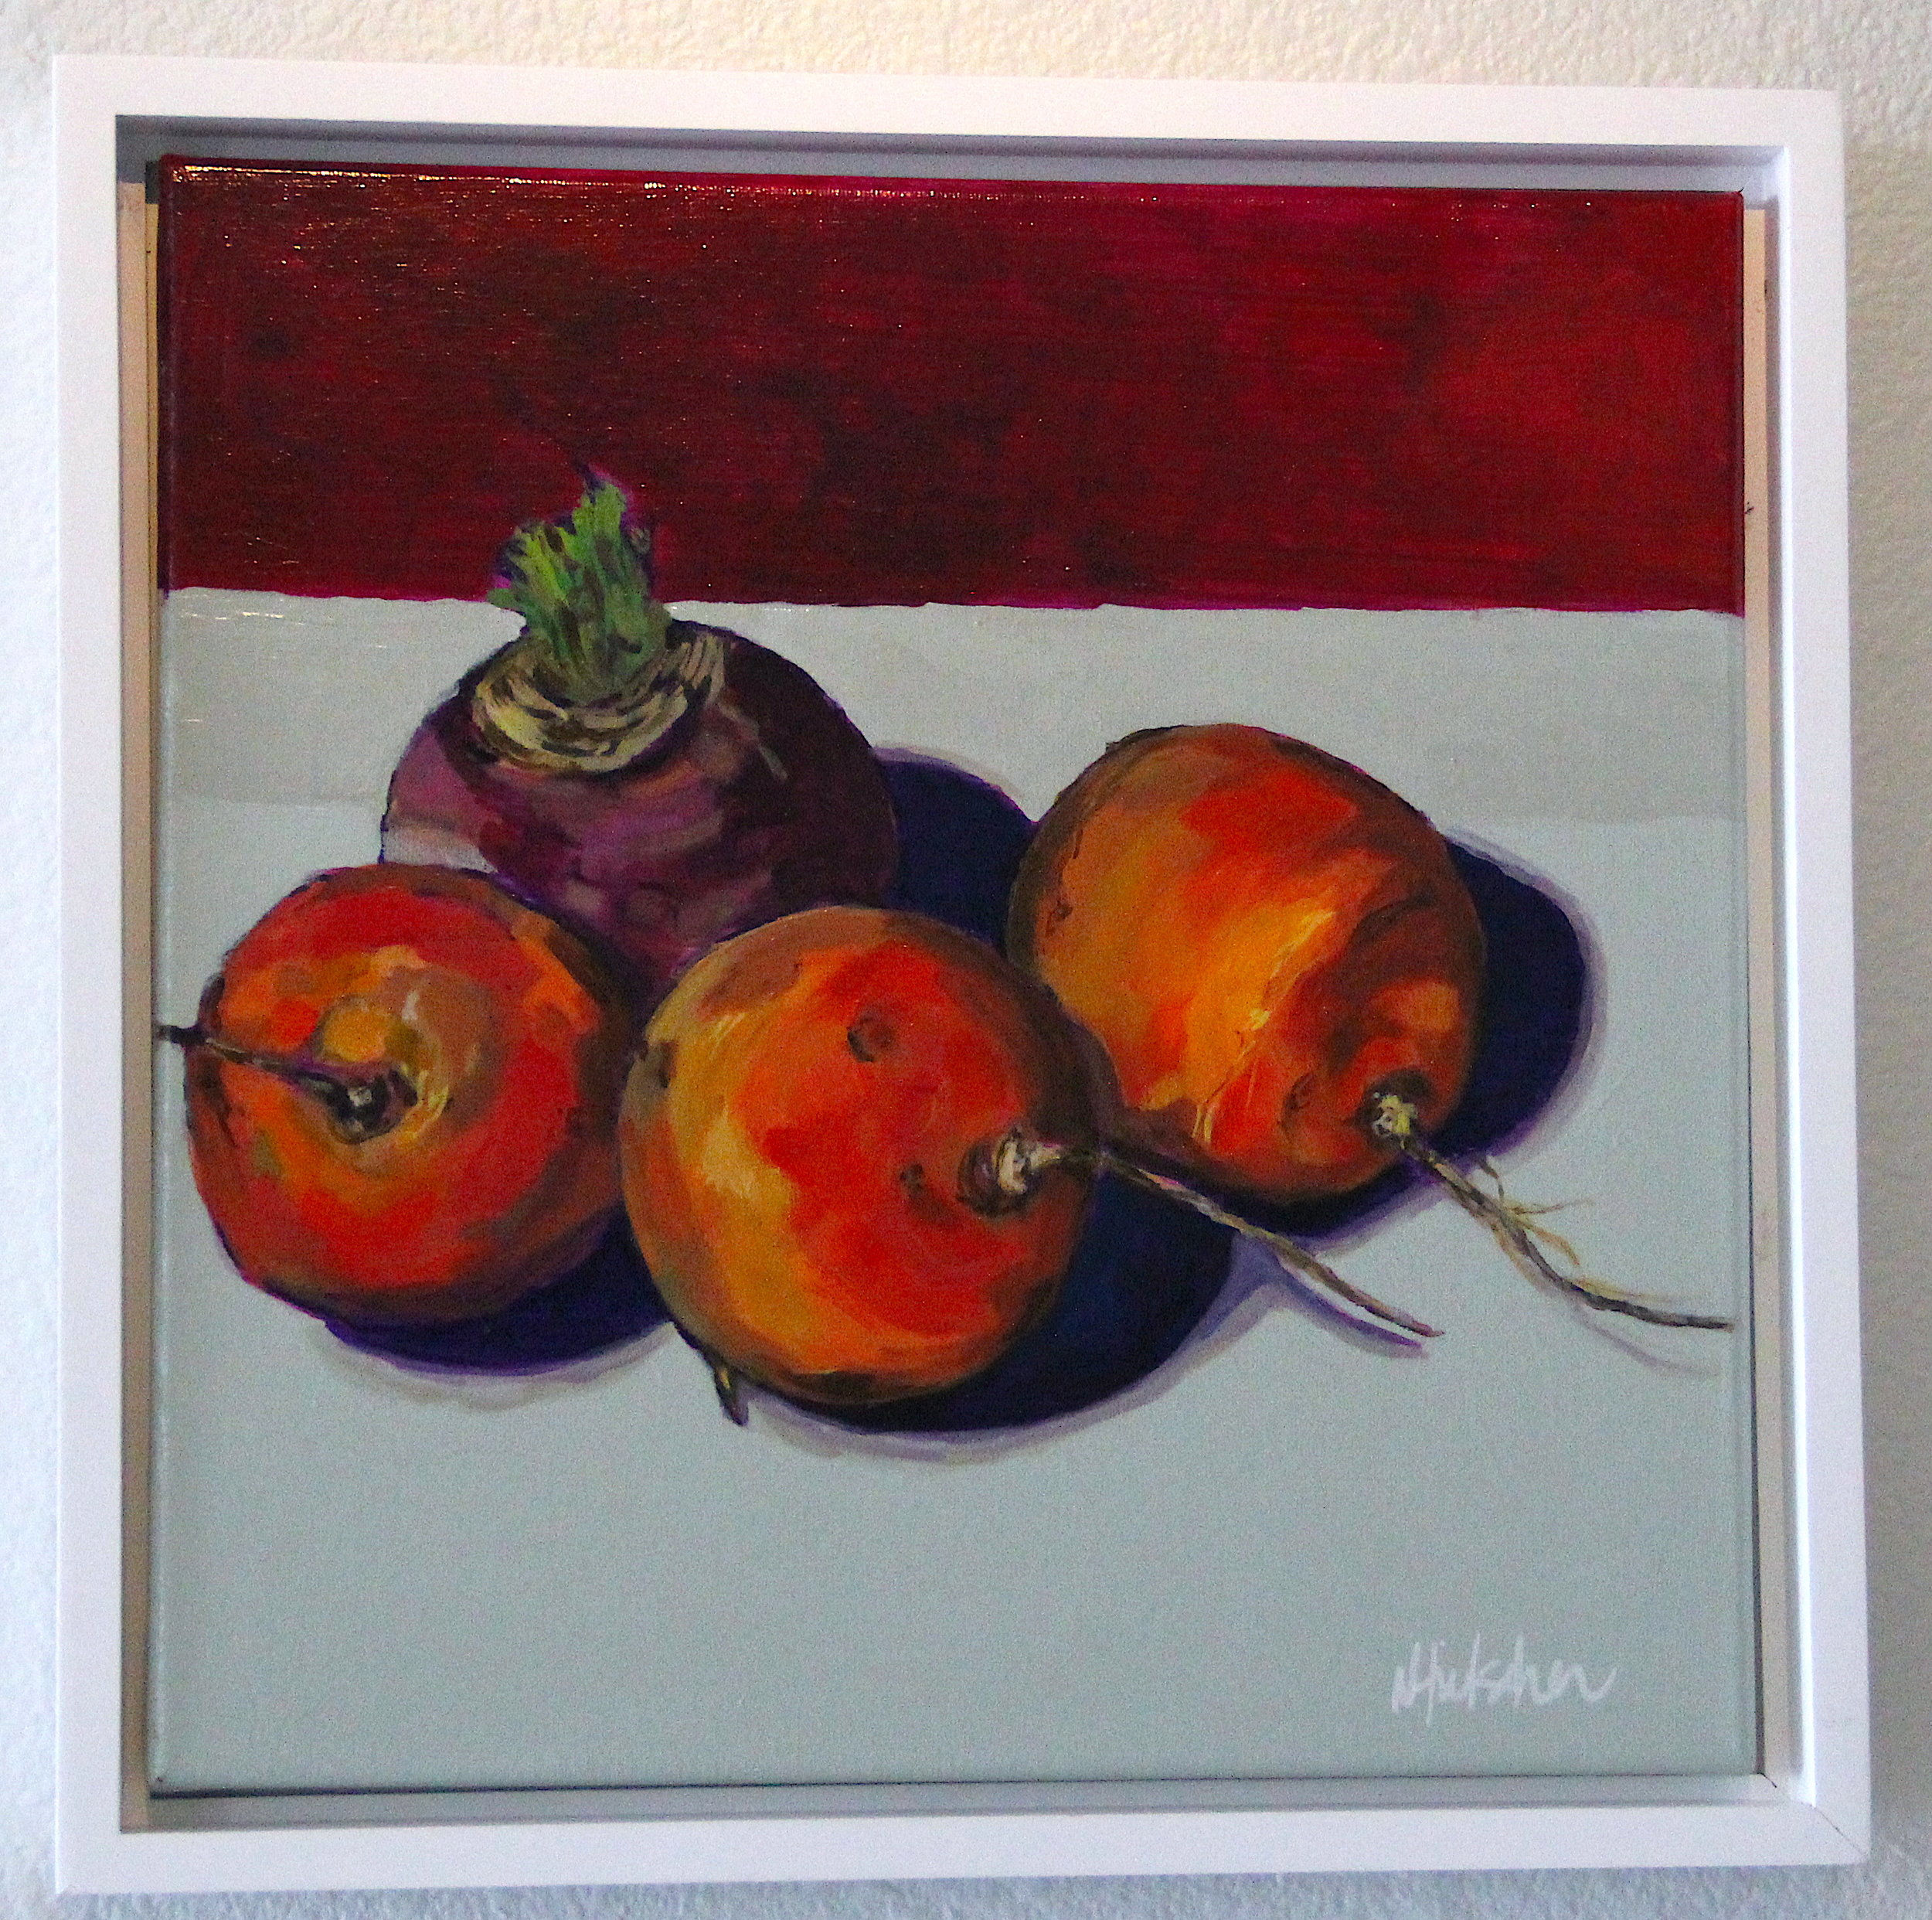 NANCY HIELSCHER, GOLDEN BEETS